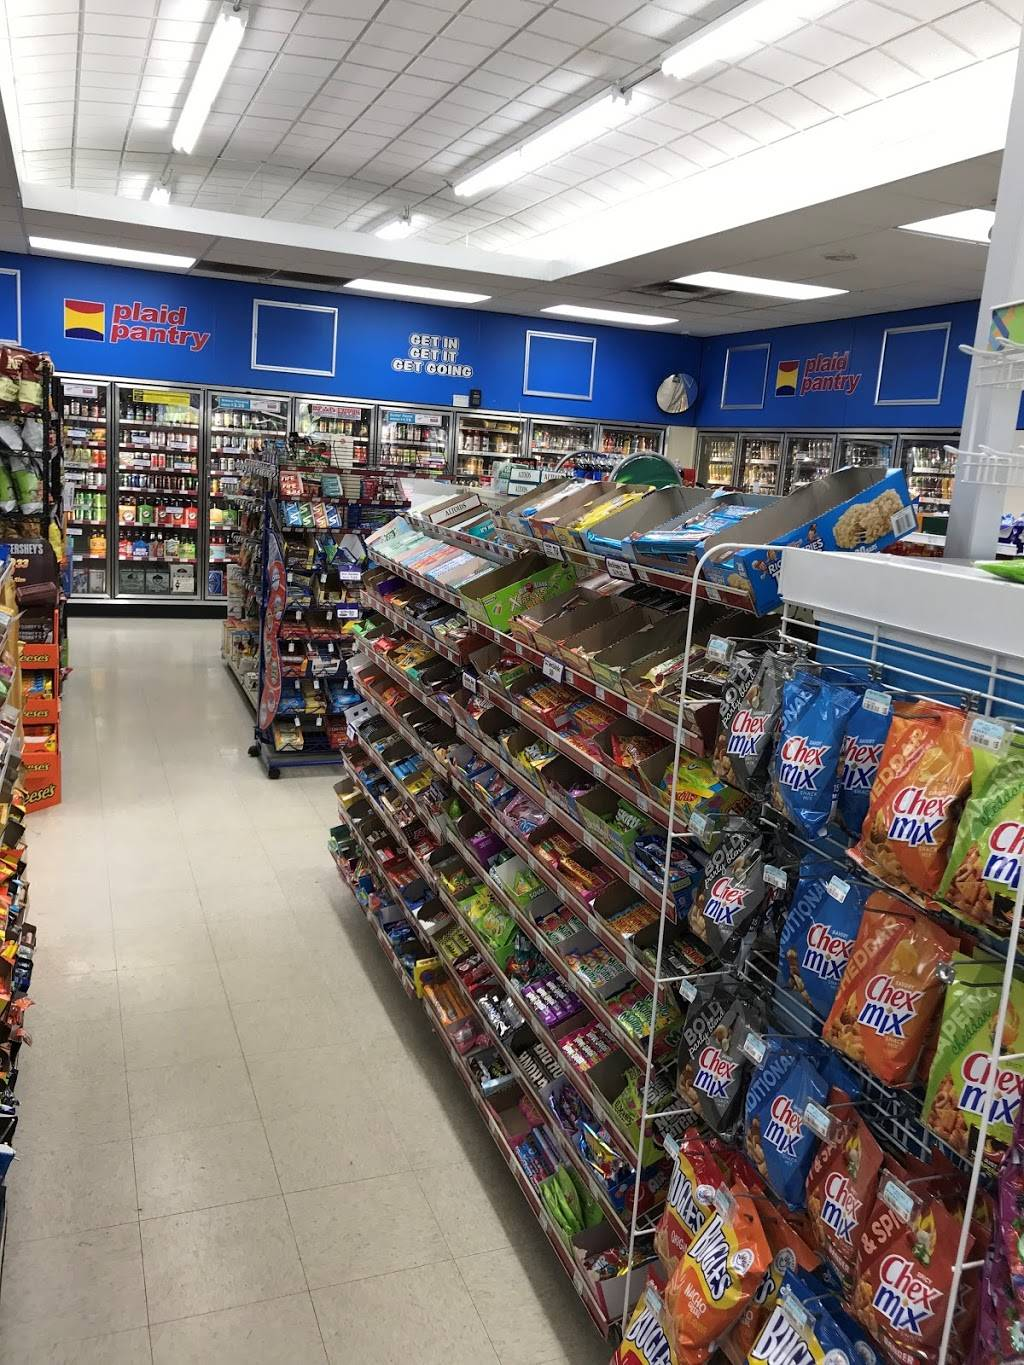 Plaid Pantry - convenience store  | Photo 3 of 9 | Address: 1020 N Marine Dr, Portland, OR 97217, USA | Phone: (503) 517-0457